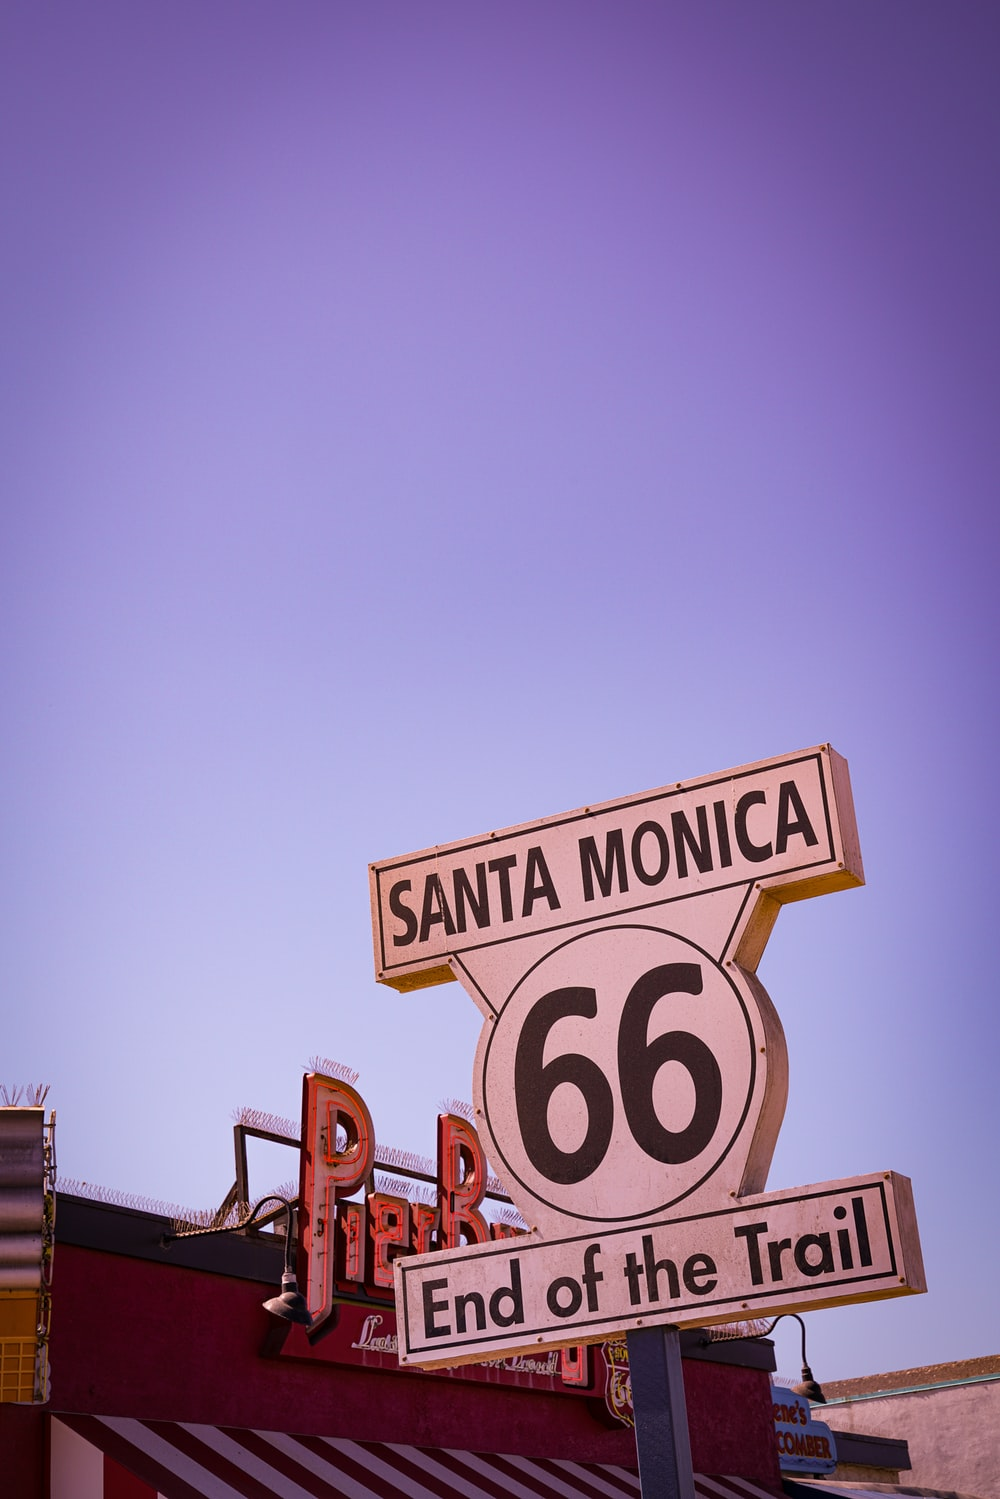 Santa Monica 66 End of the Trail signage under blue sky during daytime